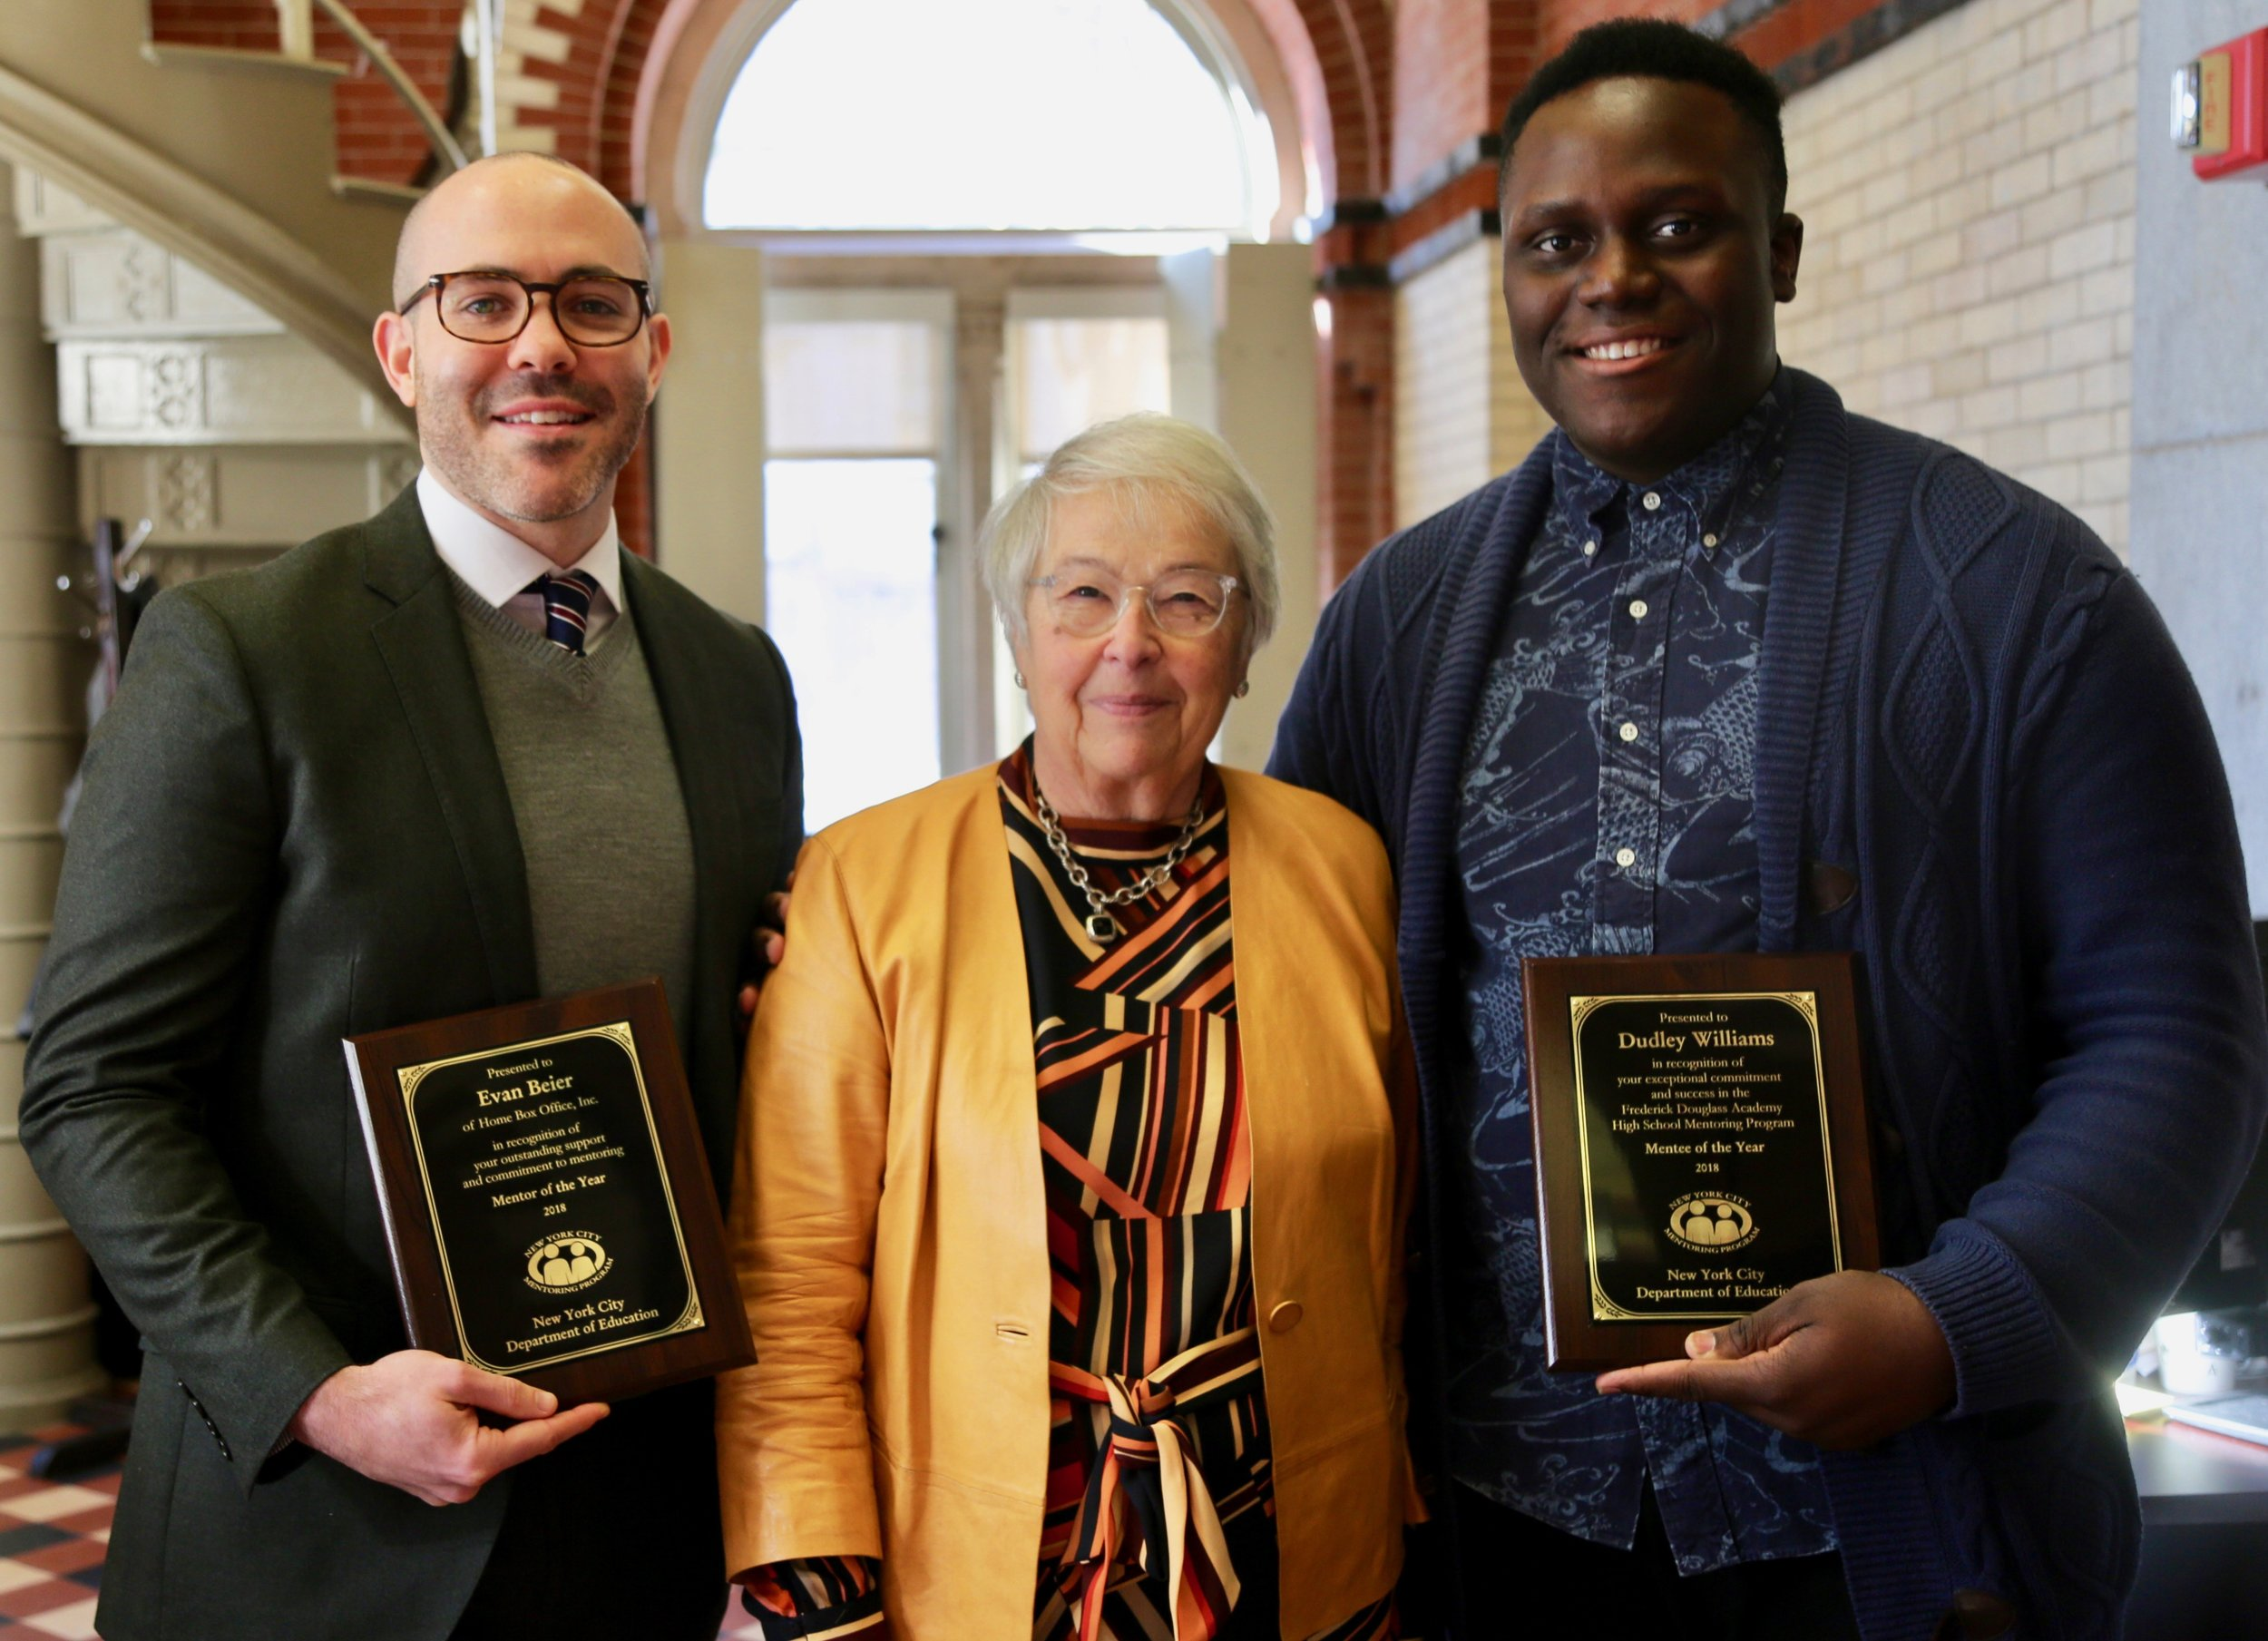 Evan (HBO), former New York City Department of Education's Chancellor Carmen Fariña, and Dudley (Frederick Douglass Academy)